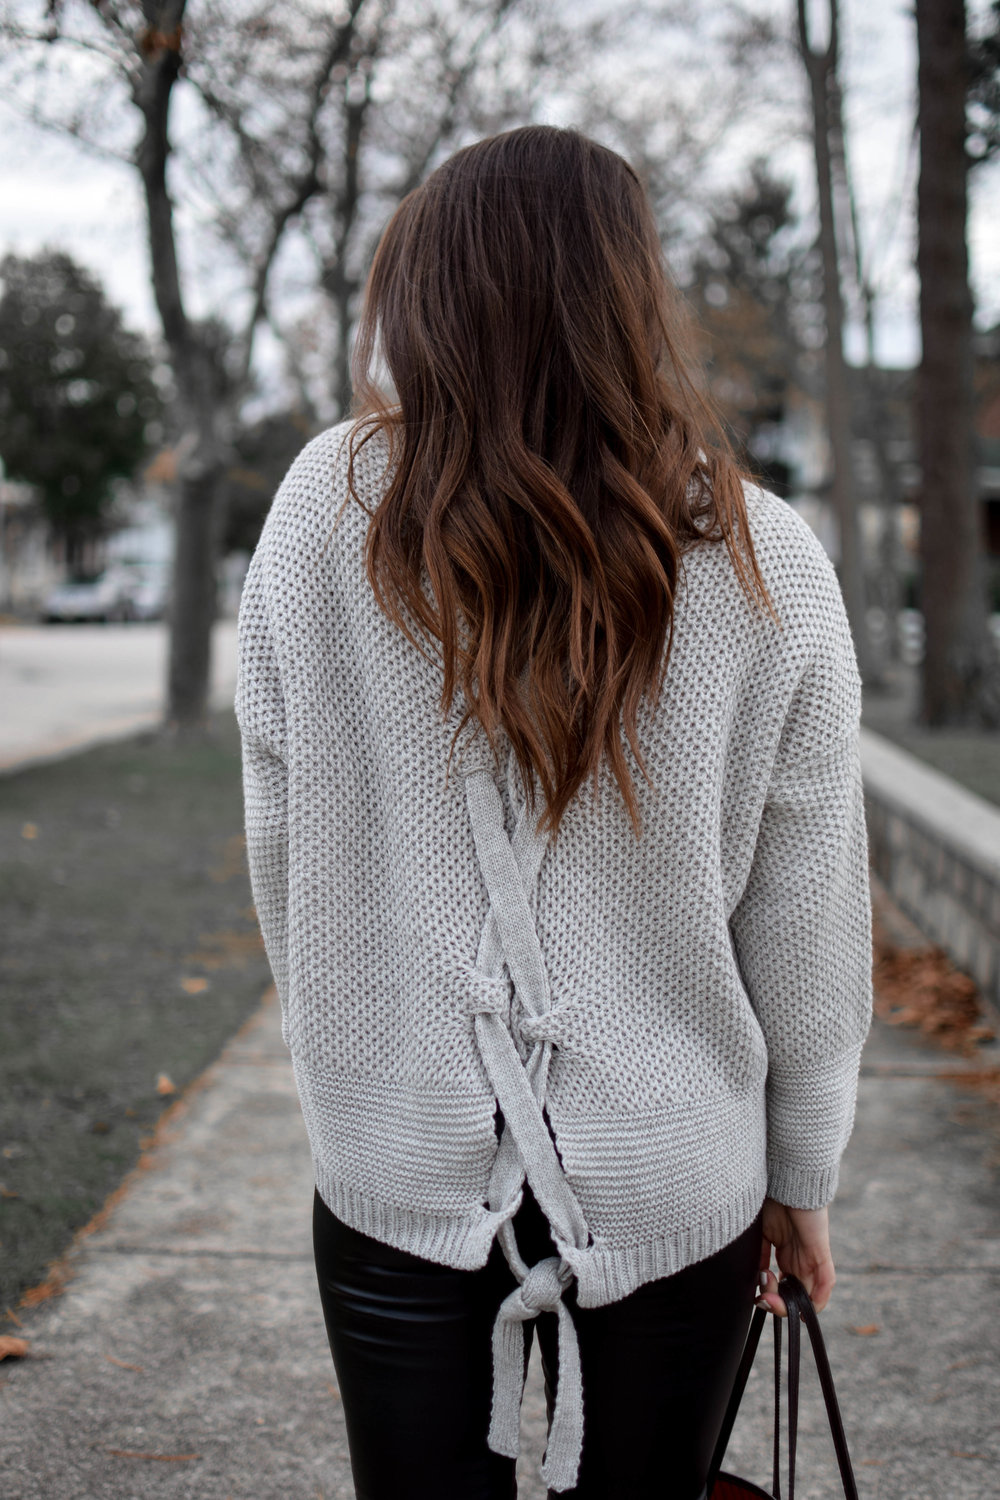 Weekend Sales + Free Shipping Day | Pine Barren Beauty | winter fashion, winter outfit idea, winter outfit inspiration, cozy sweater, sweater weather, lace up sweater, express sale, hair goals